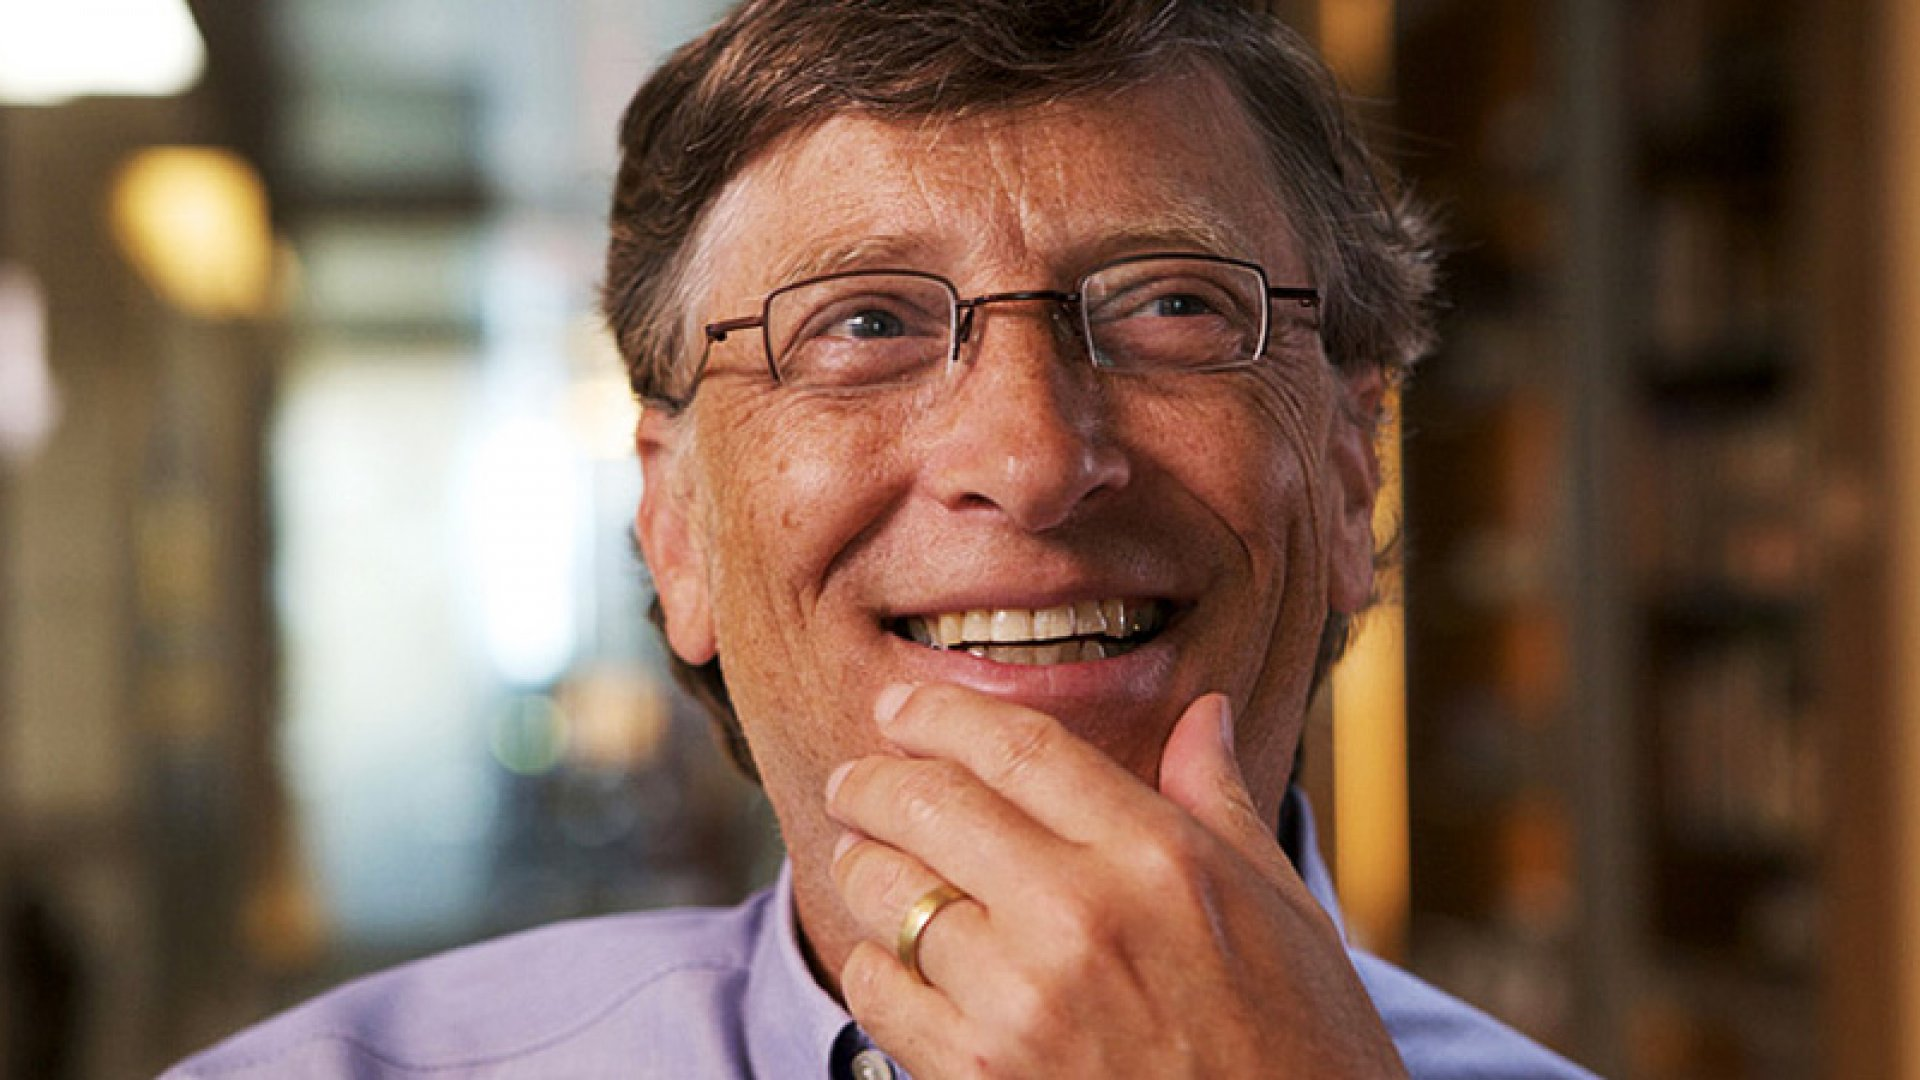 11 Ideas From Billionaires That Are So Crazy They Might Just Work